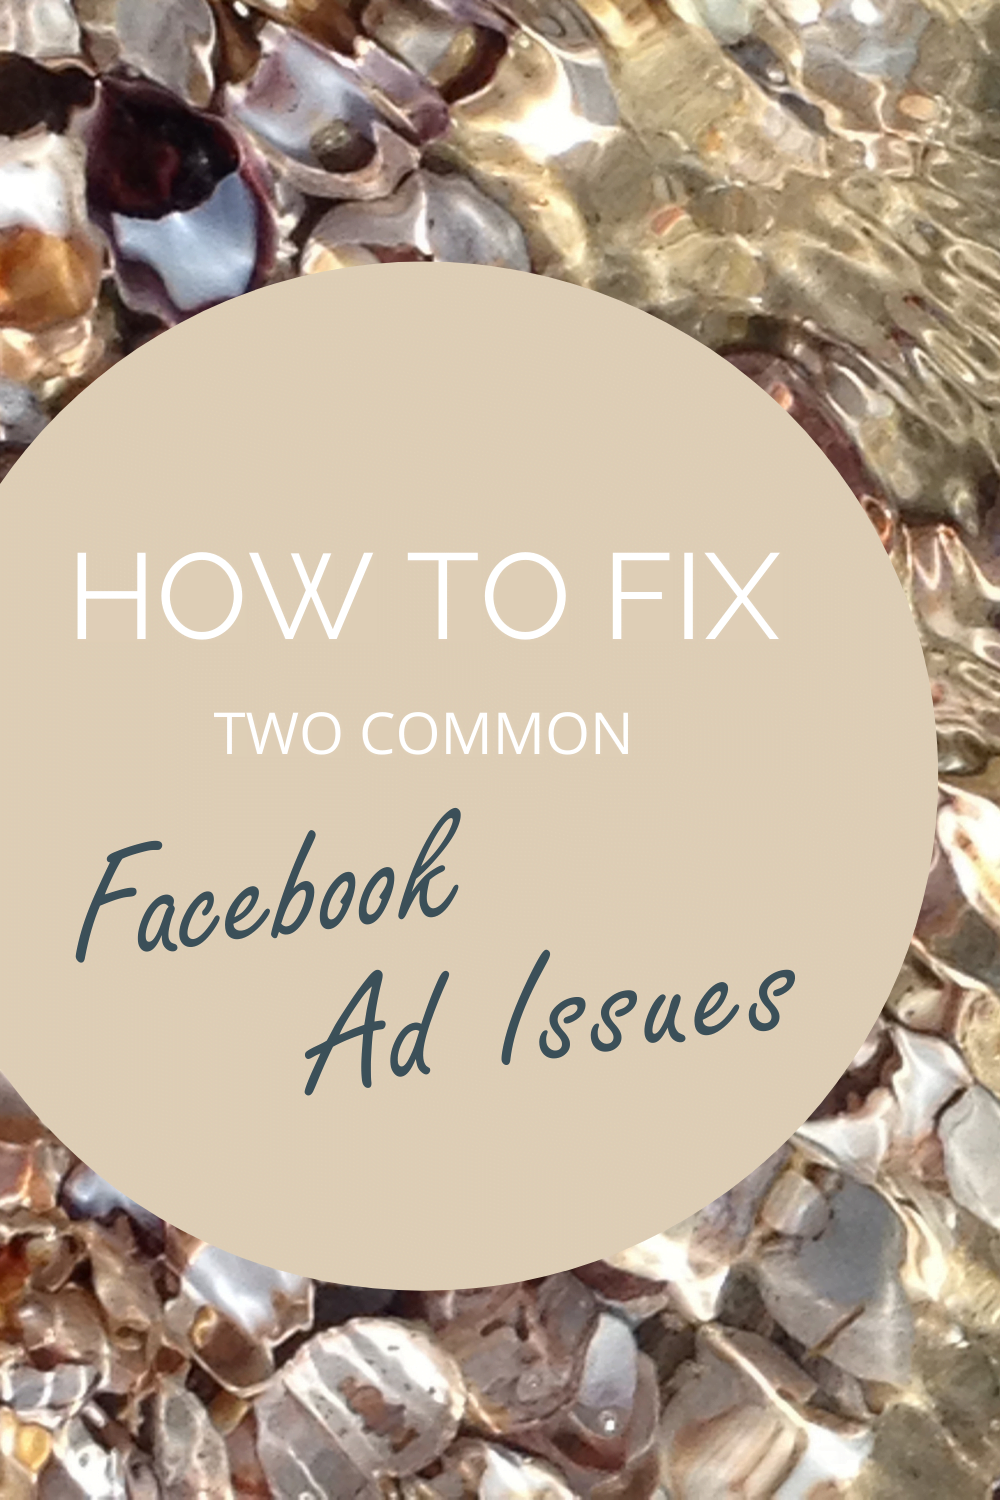 How to Fix Two Common Facebook Ad Issues